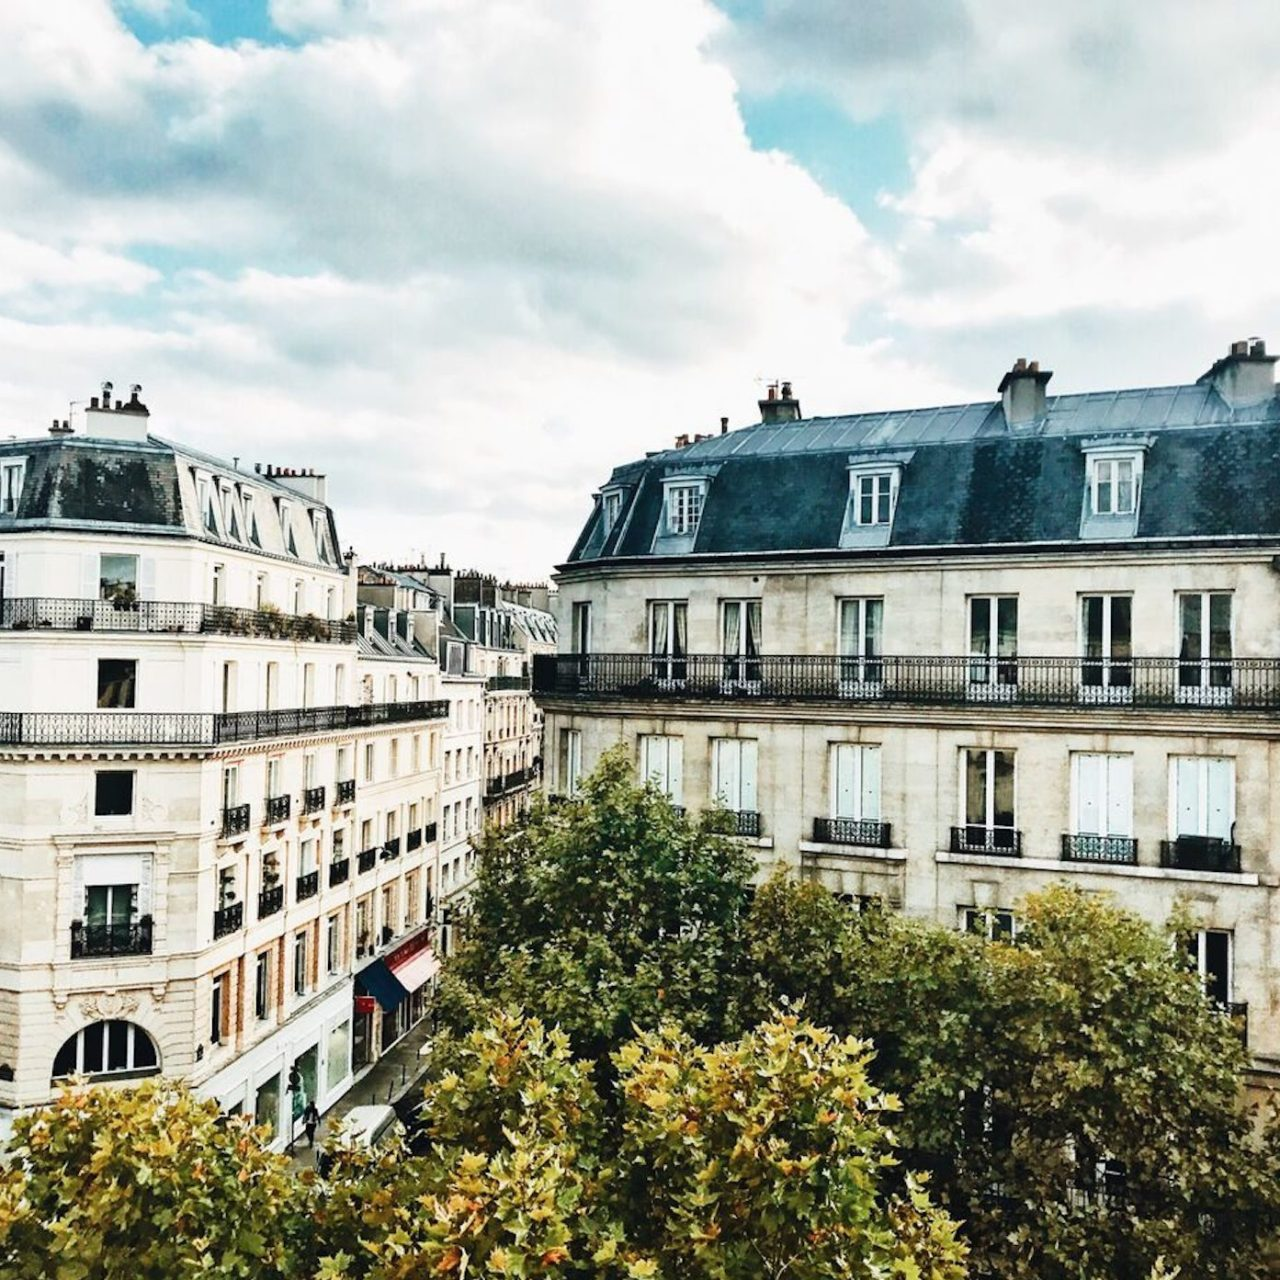 Speedy + Sumptuous: How to Do Paris In 72 Hrs on A Luxury Travel Budget